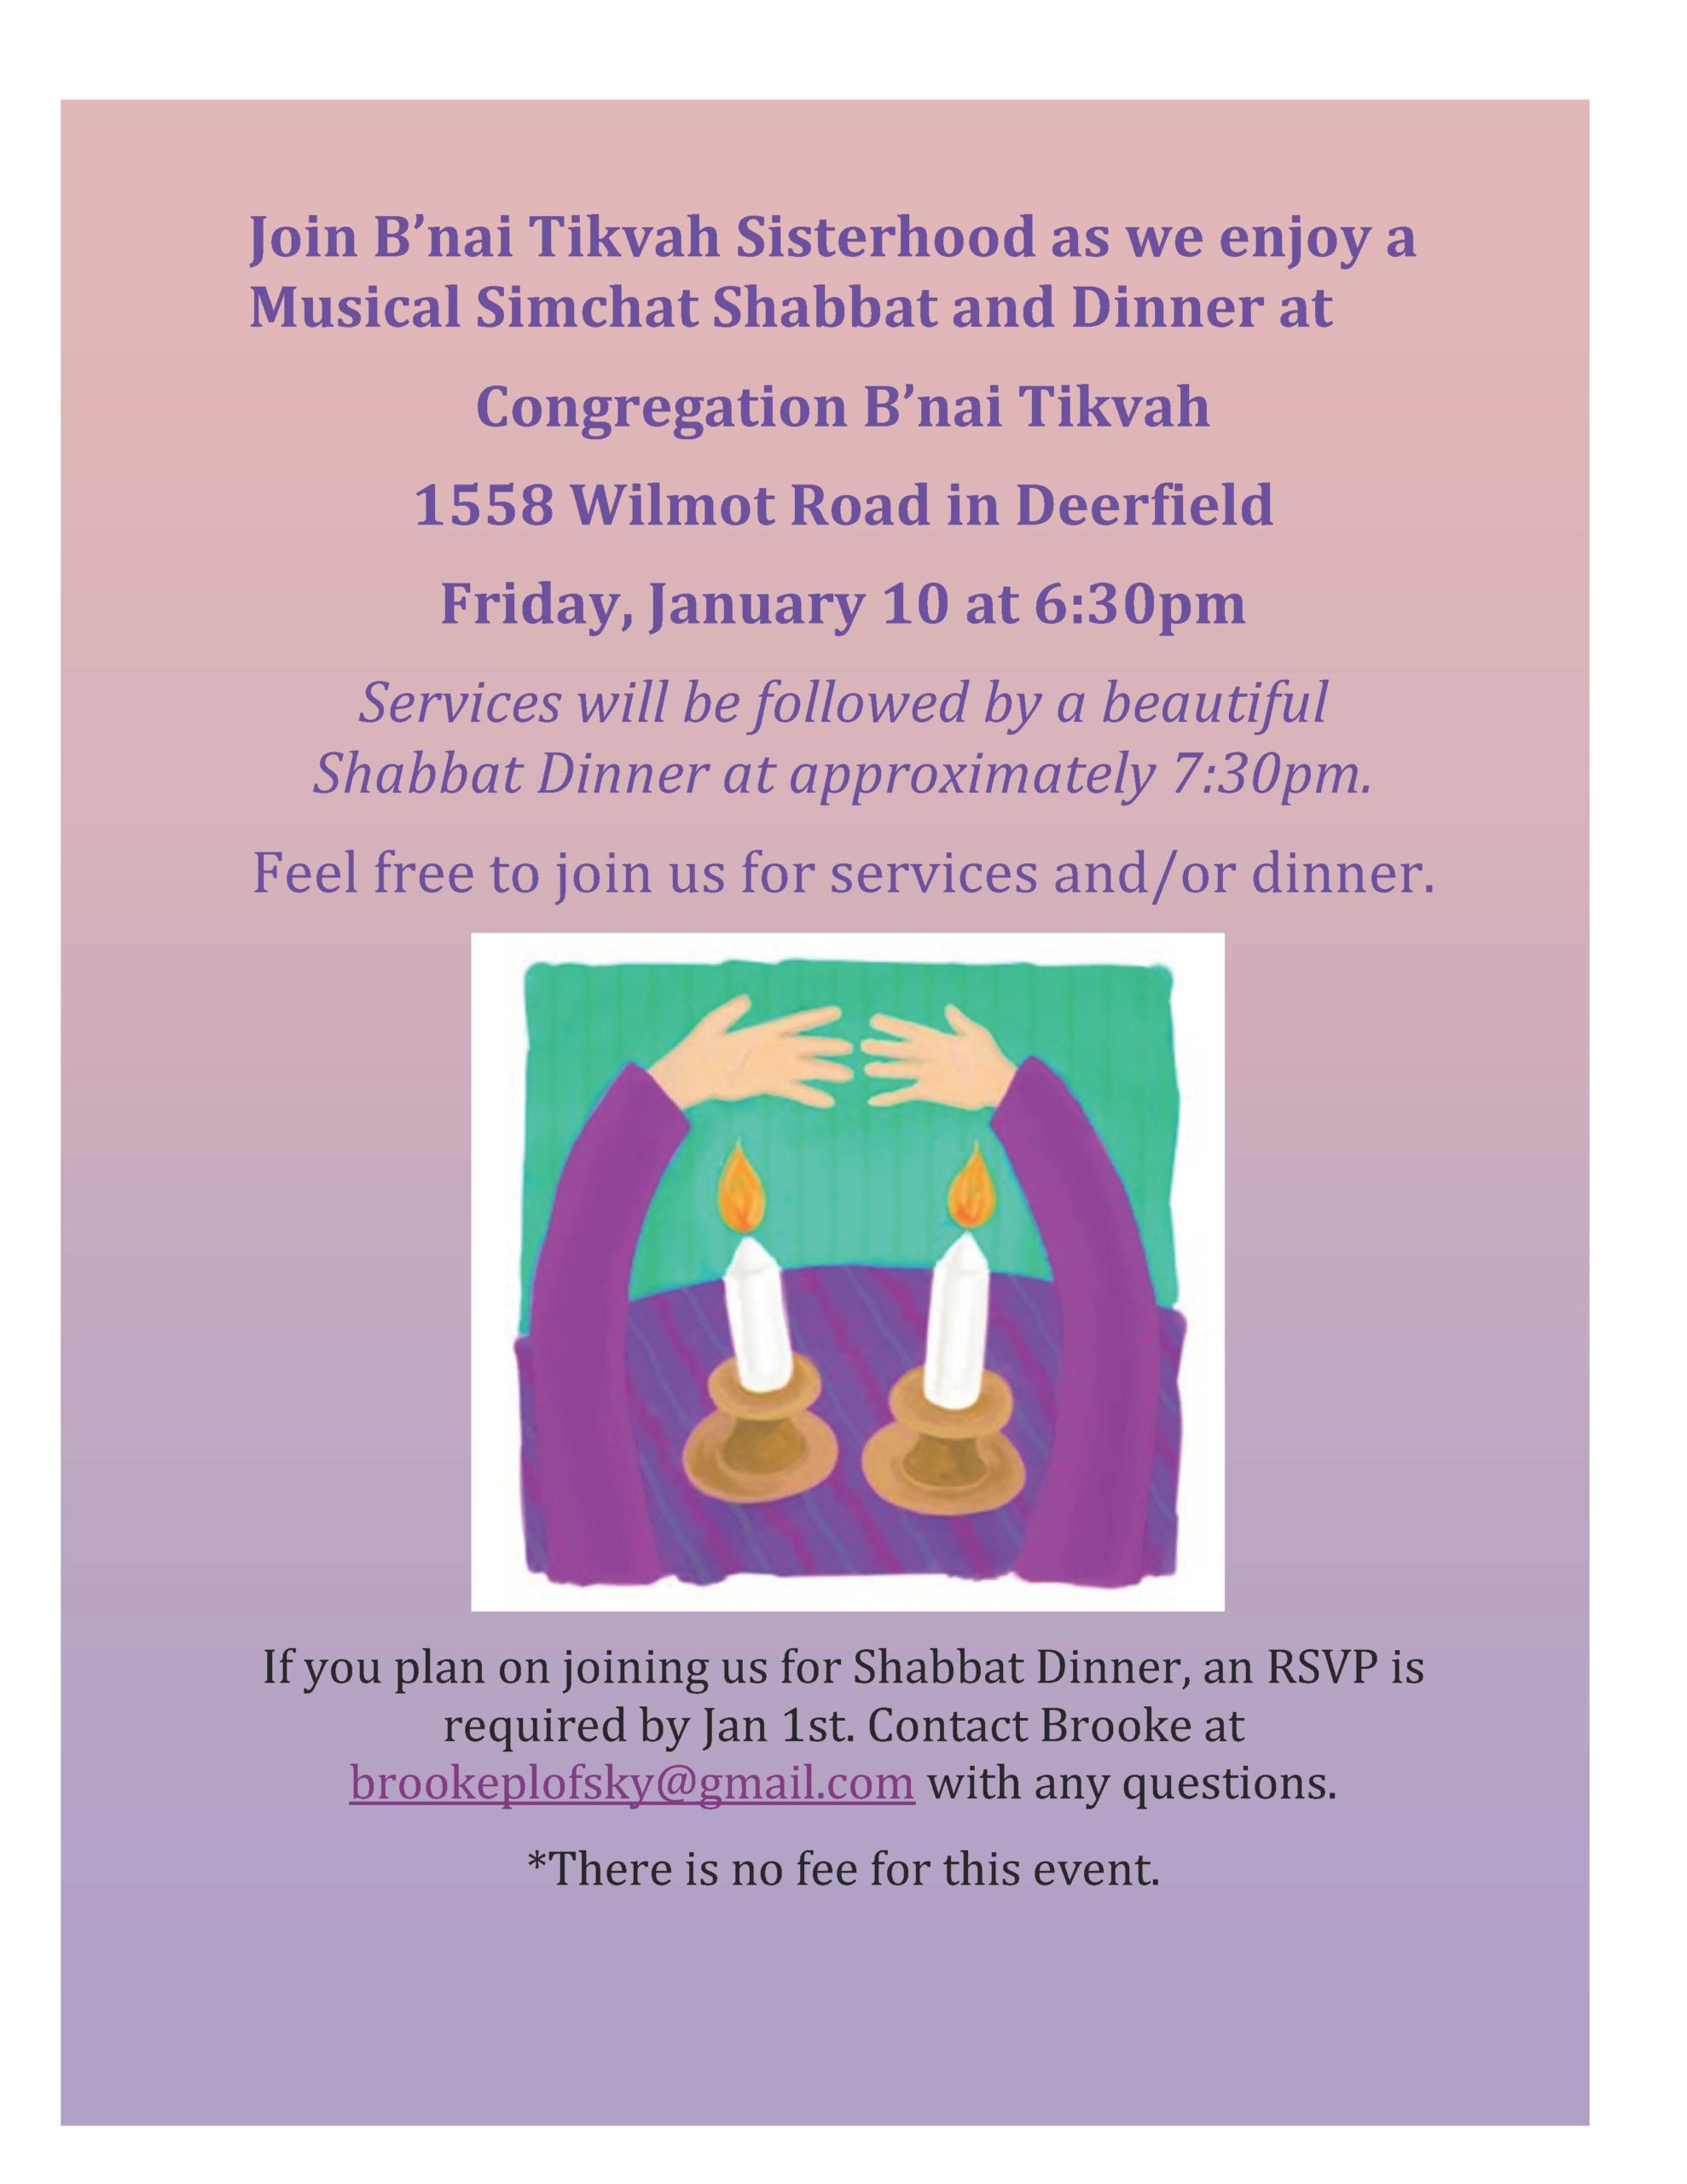 Musical Simchat Shabbat and Sisterhood Shabbat Dinner